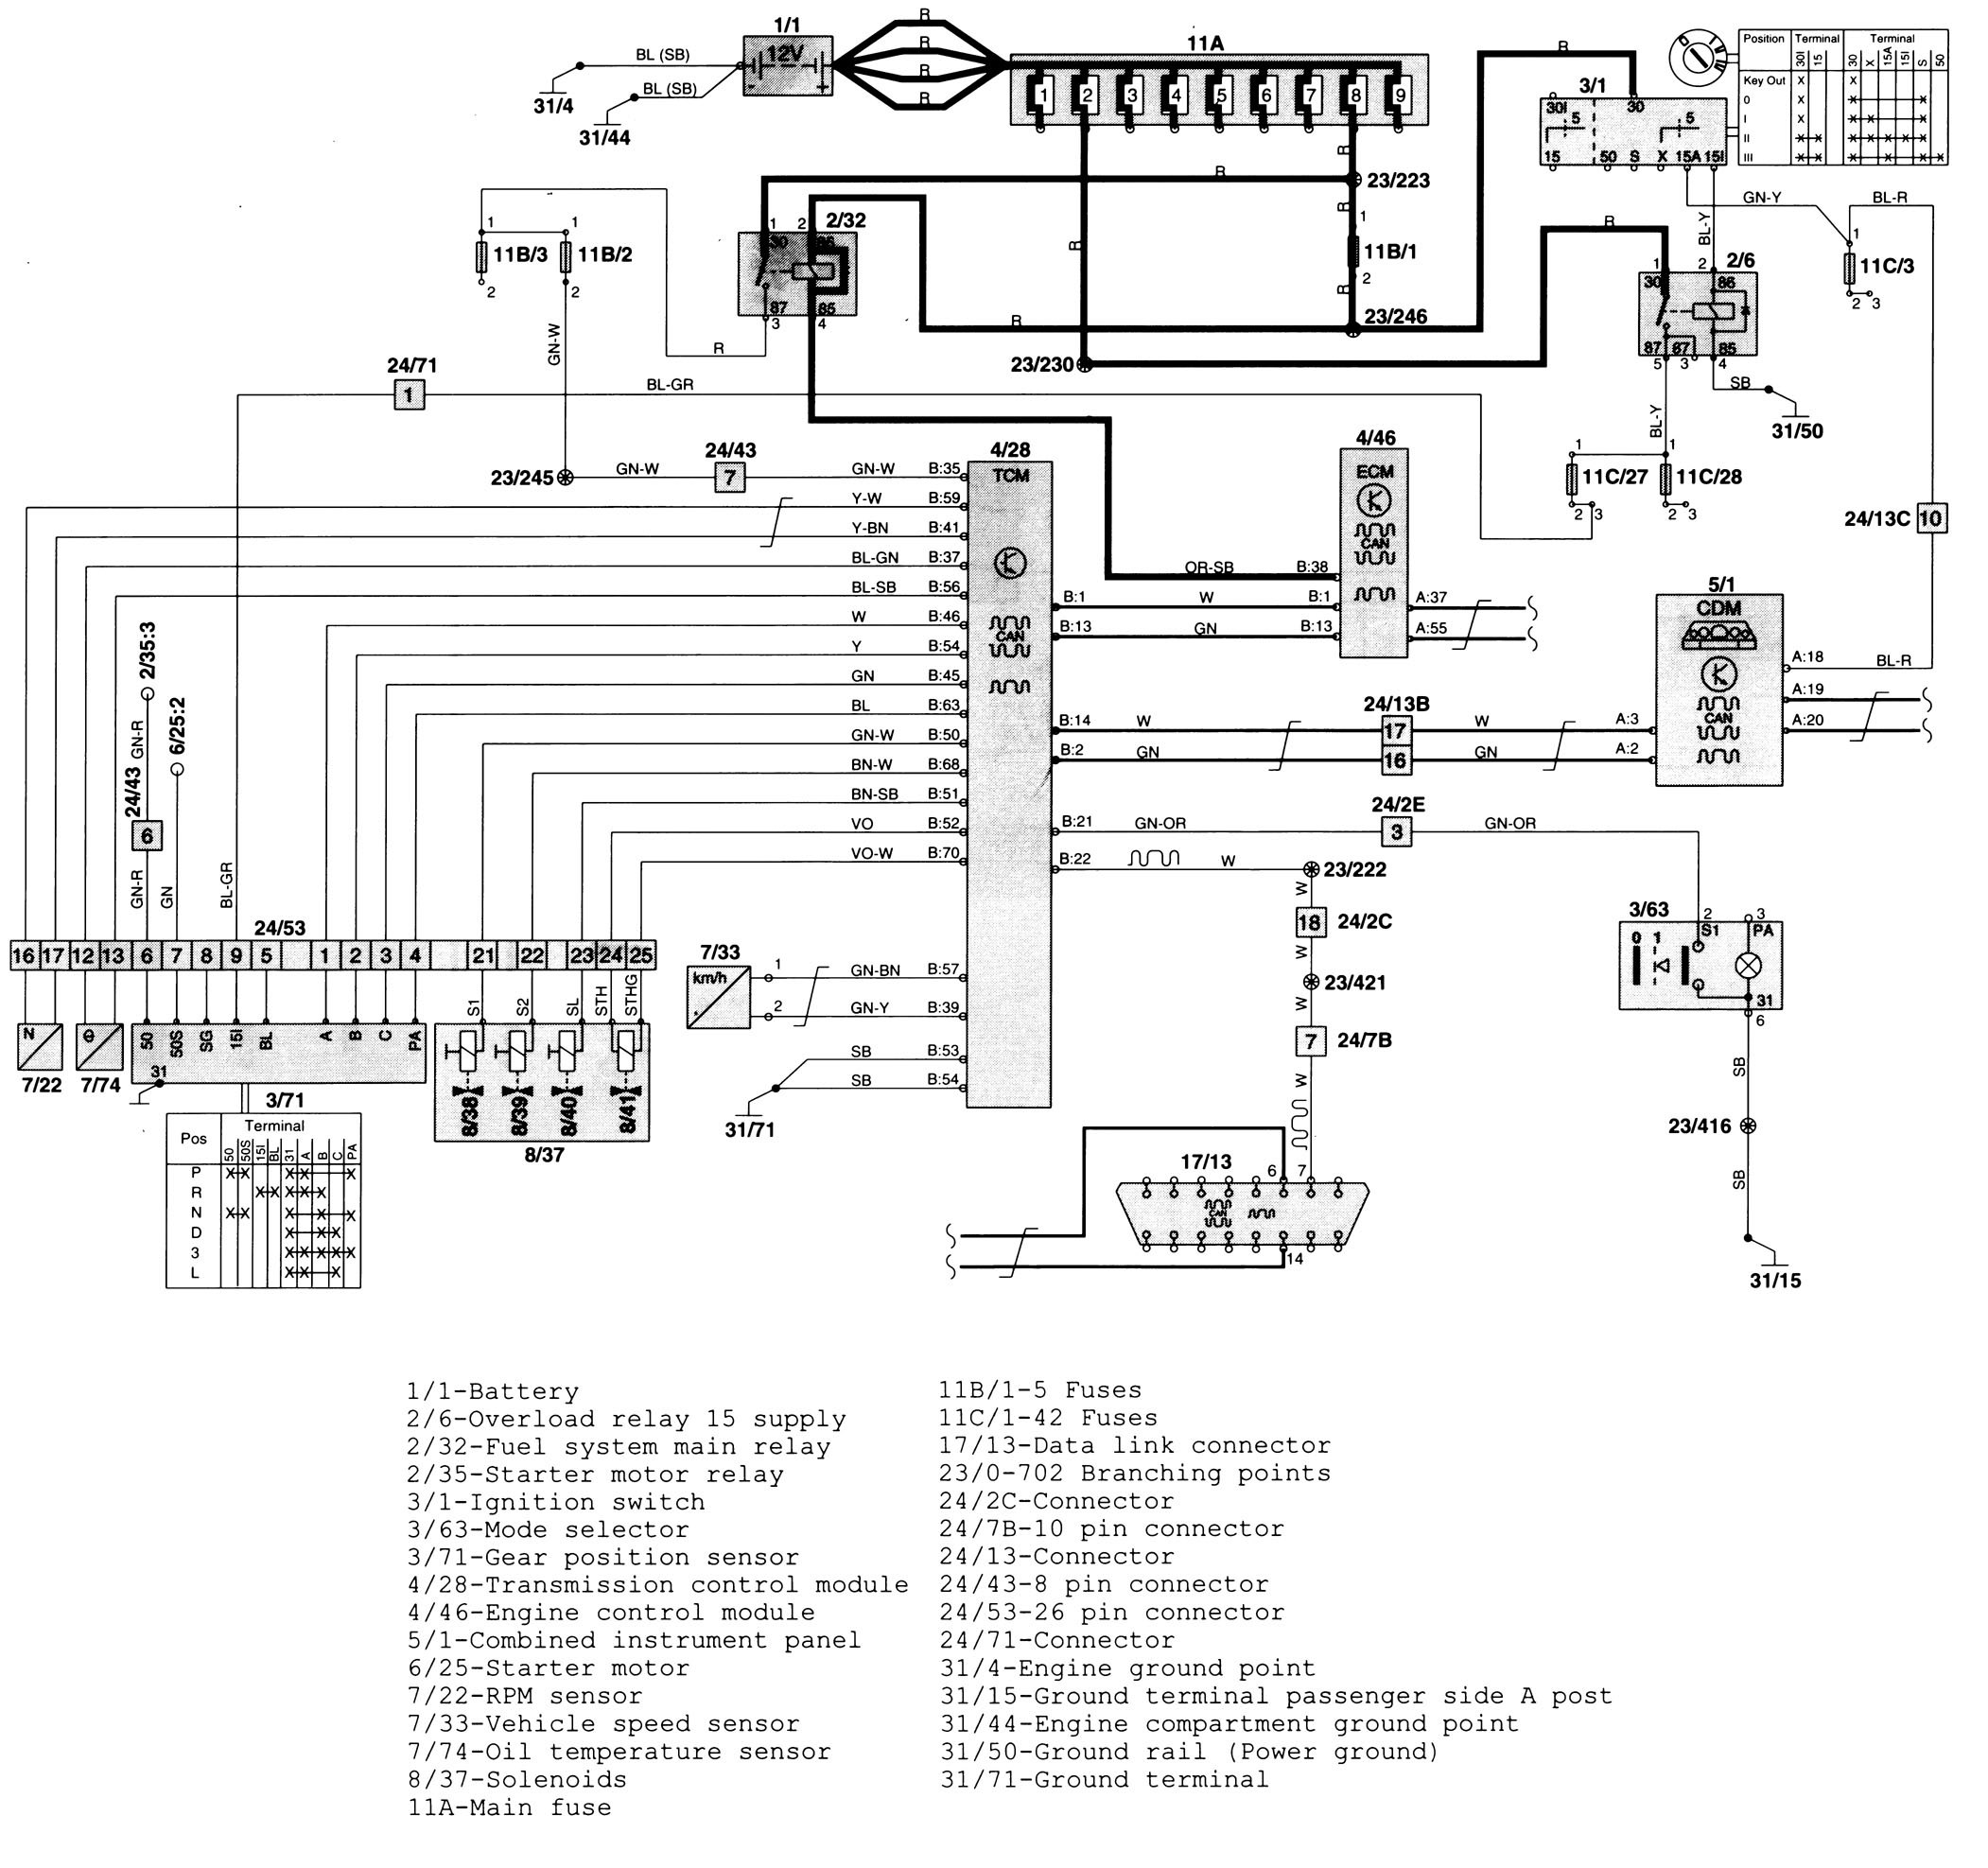 volvo c70 wiring diagram transmission controls 1999 volvo c70 (1999) wiring diagrams transmission controls volvo c70 2001 wiring diagram at bayanpartner.co